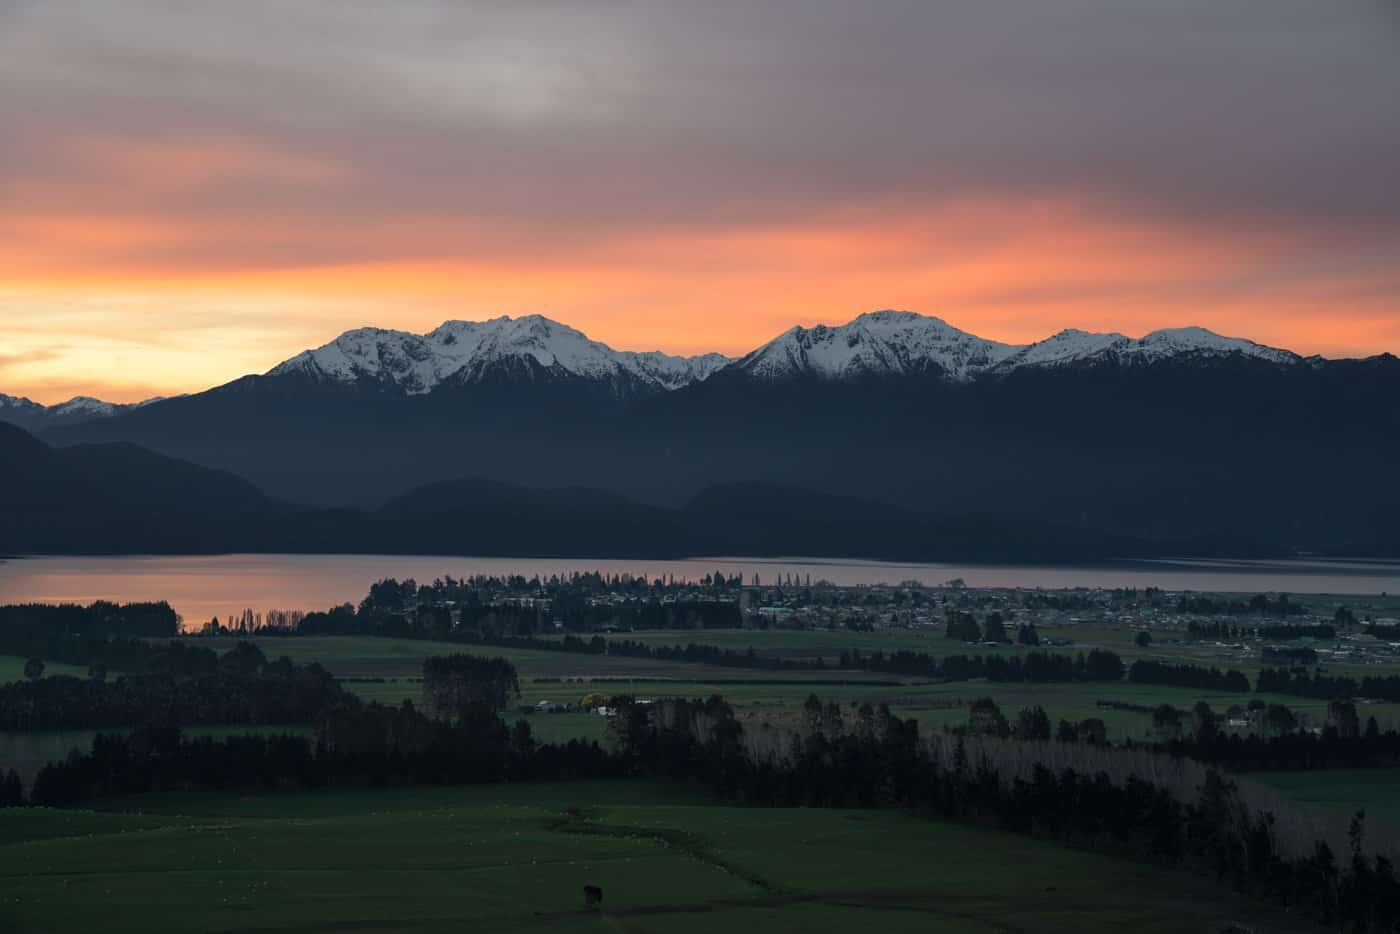 If you are staying the night in Te Anau on your way to Milford Sound from Queenstown, be sure to arrive in time for sunset.